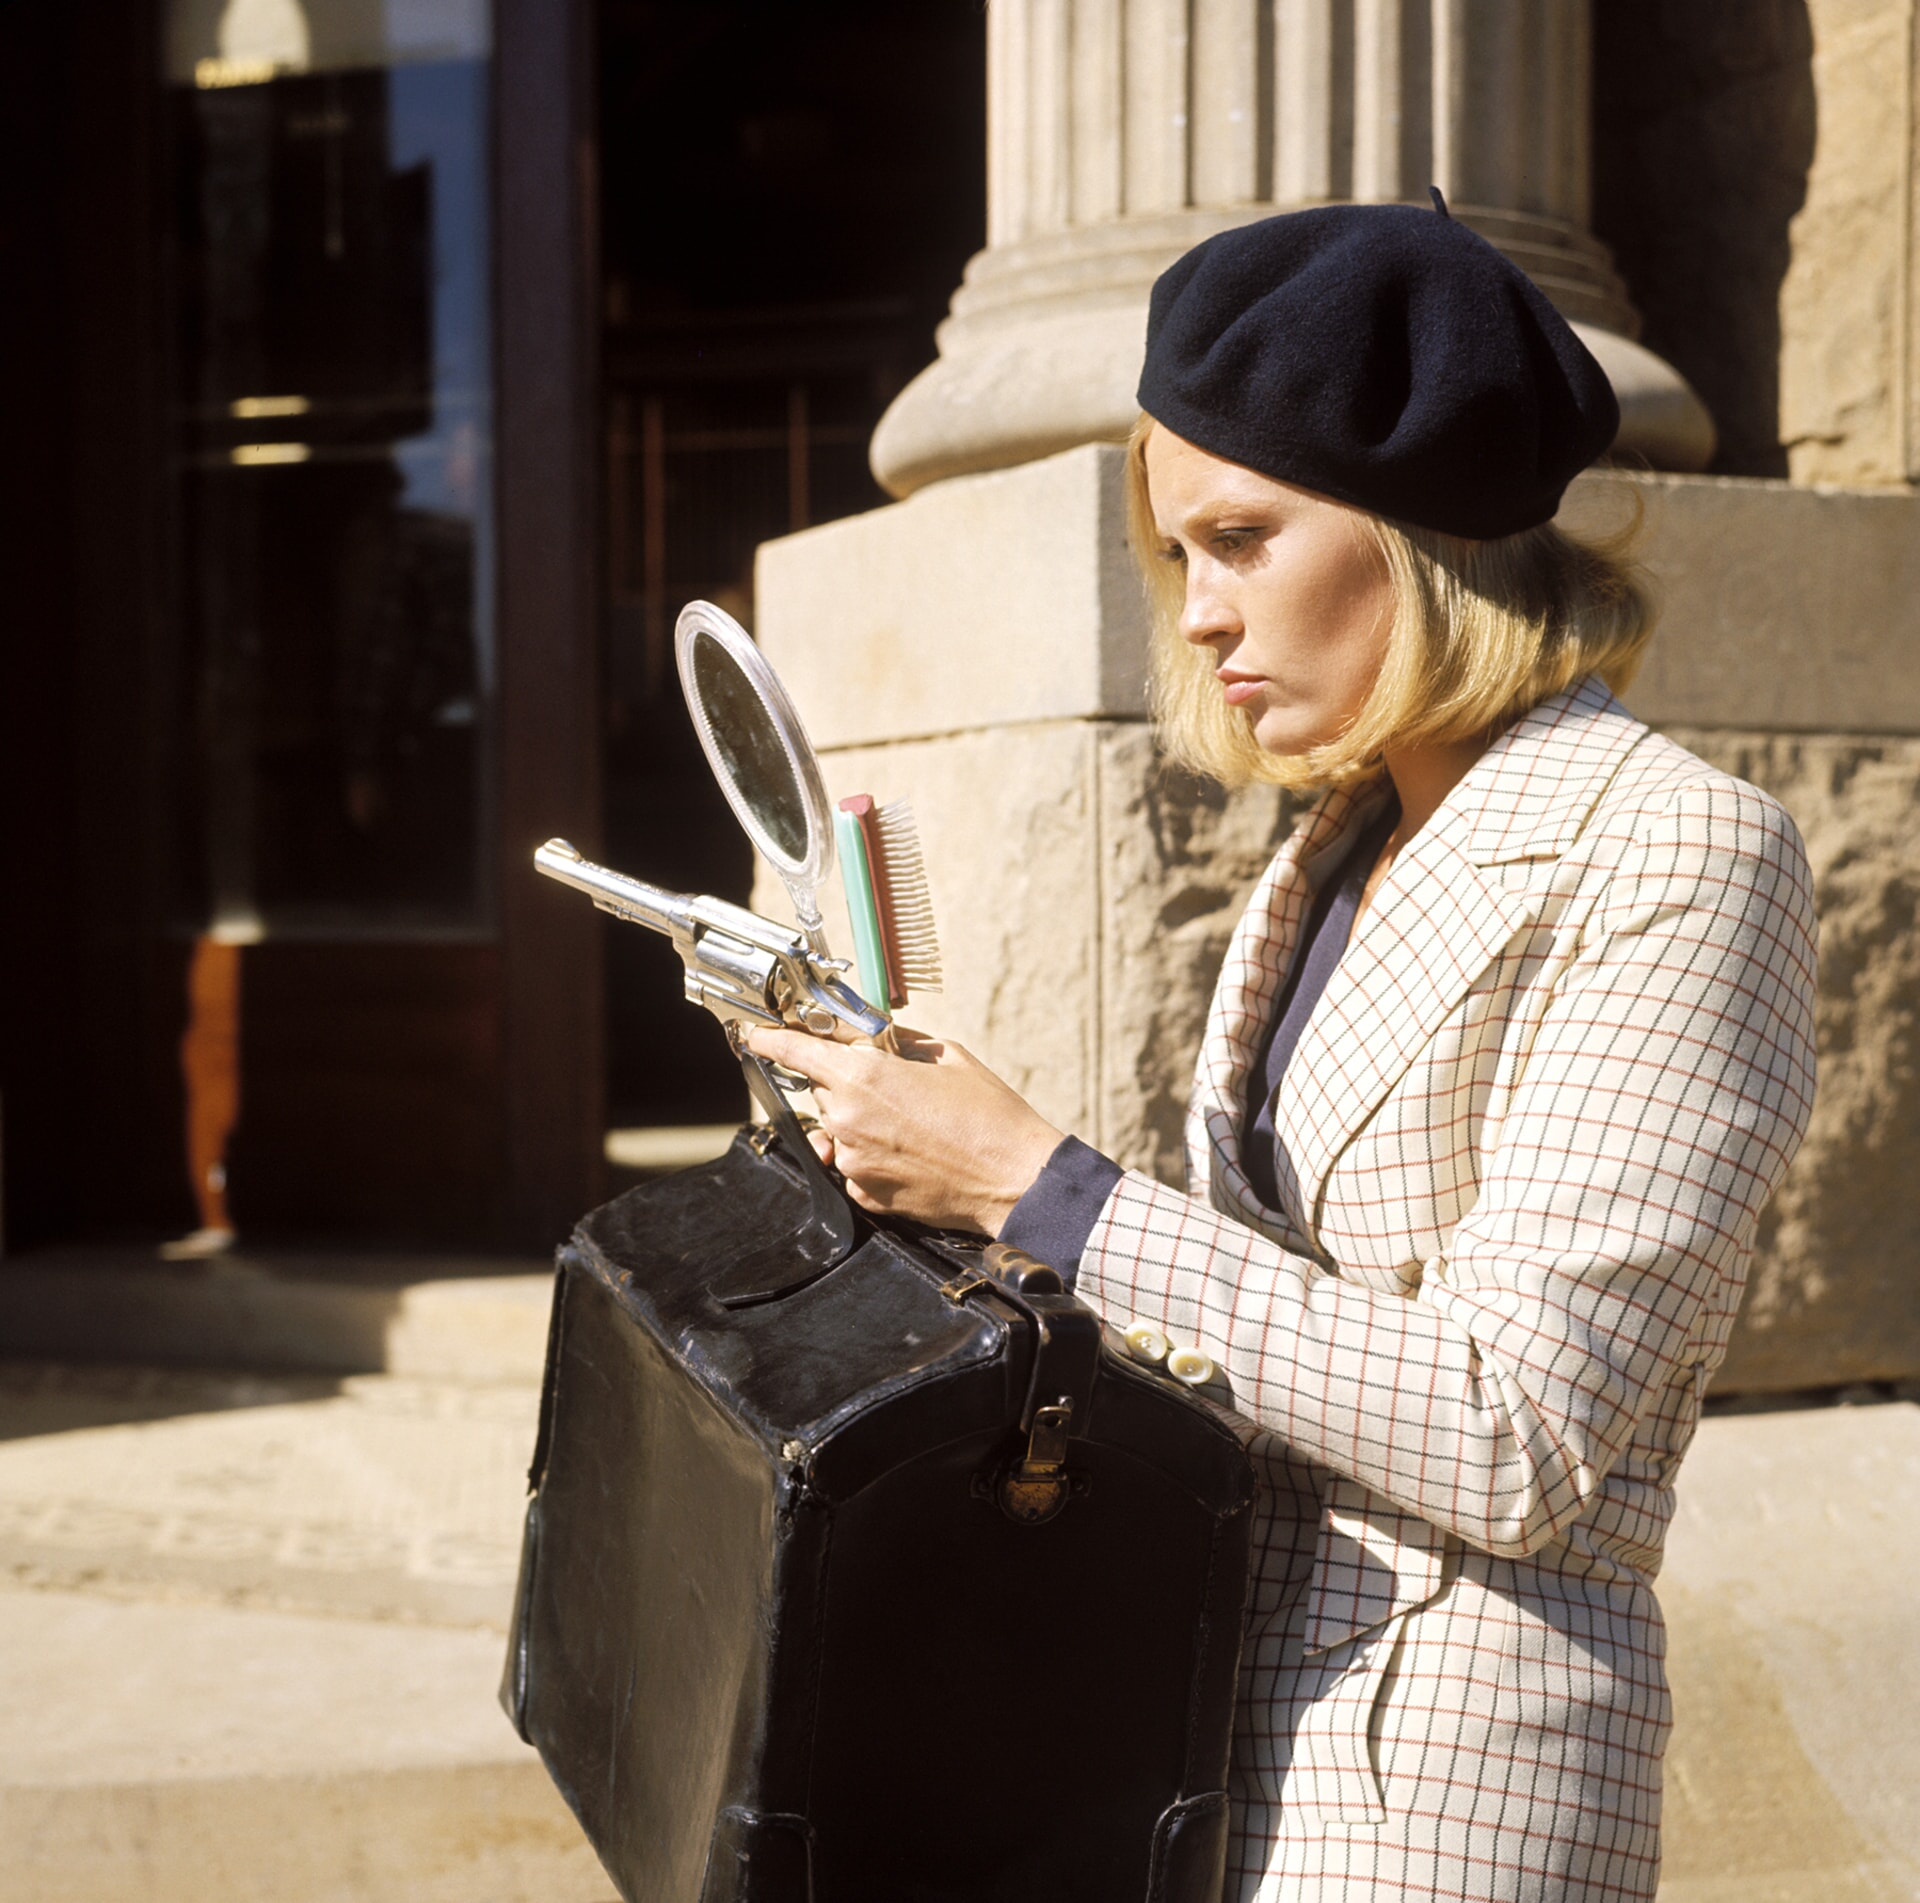 faye dunaway as bonnie parker in bonnie and clyde